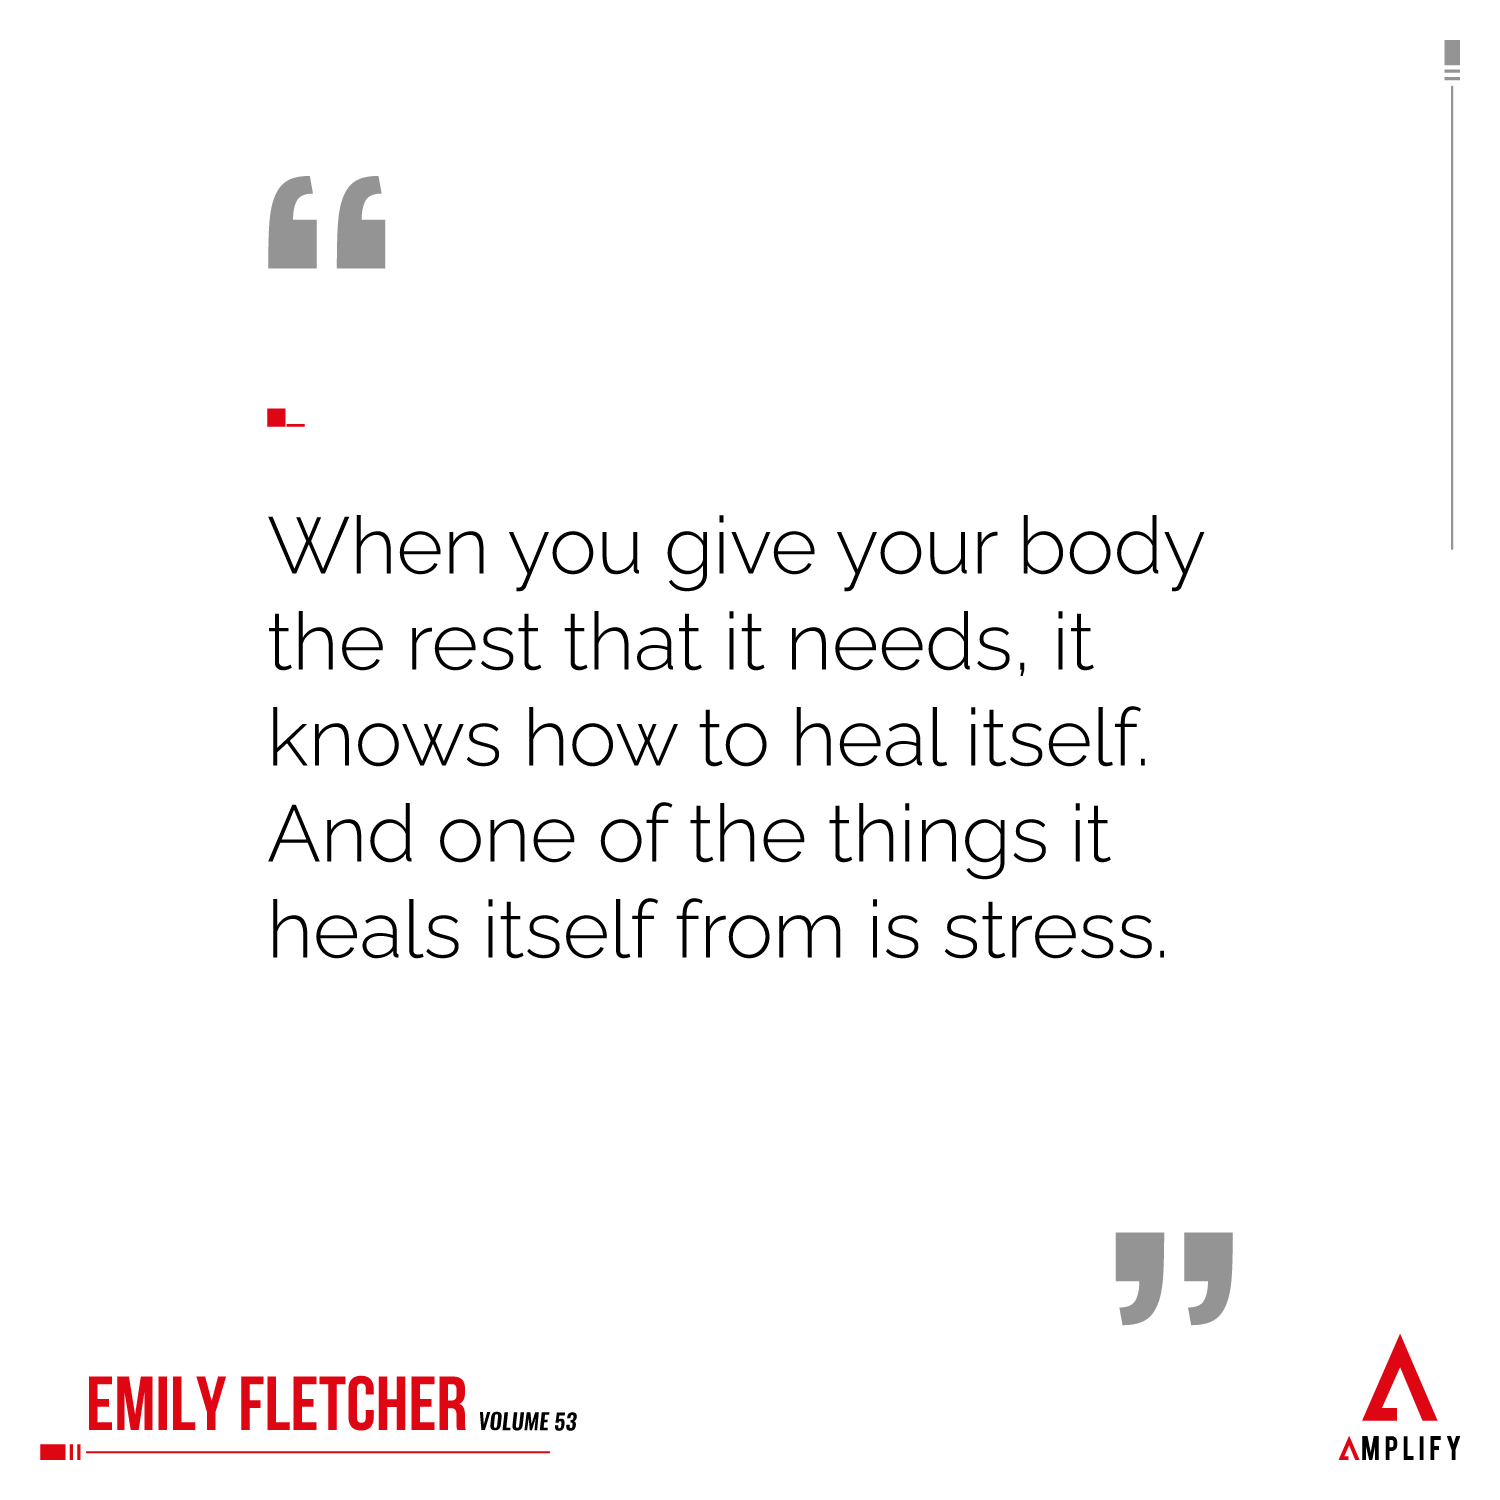 Quote: When you give your body the rest that it needs, it knows how to heal itself. And one of the things it heals itself from is stress